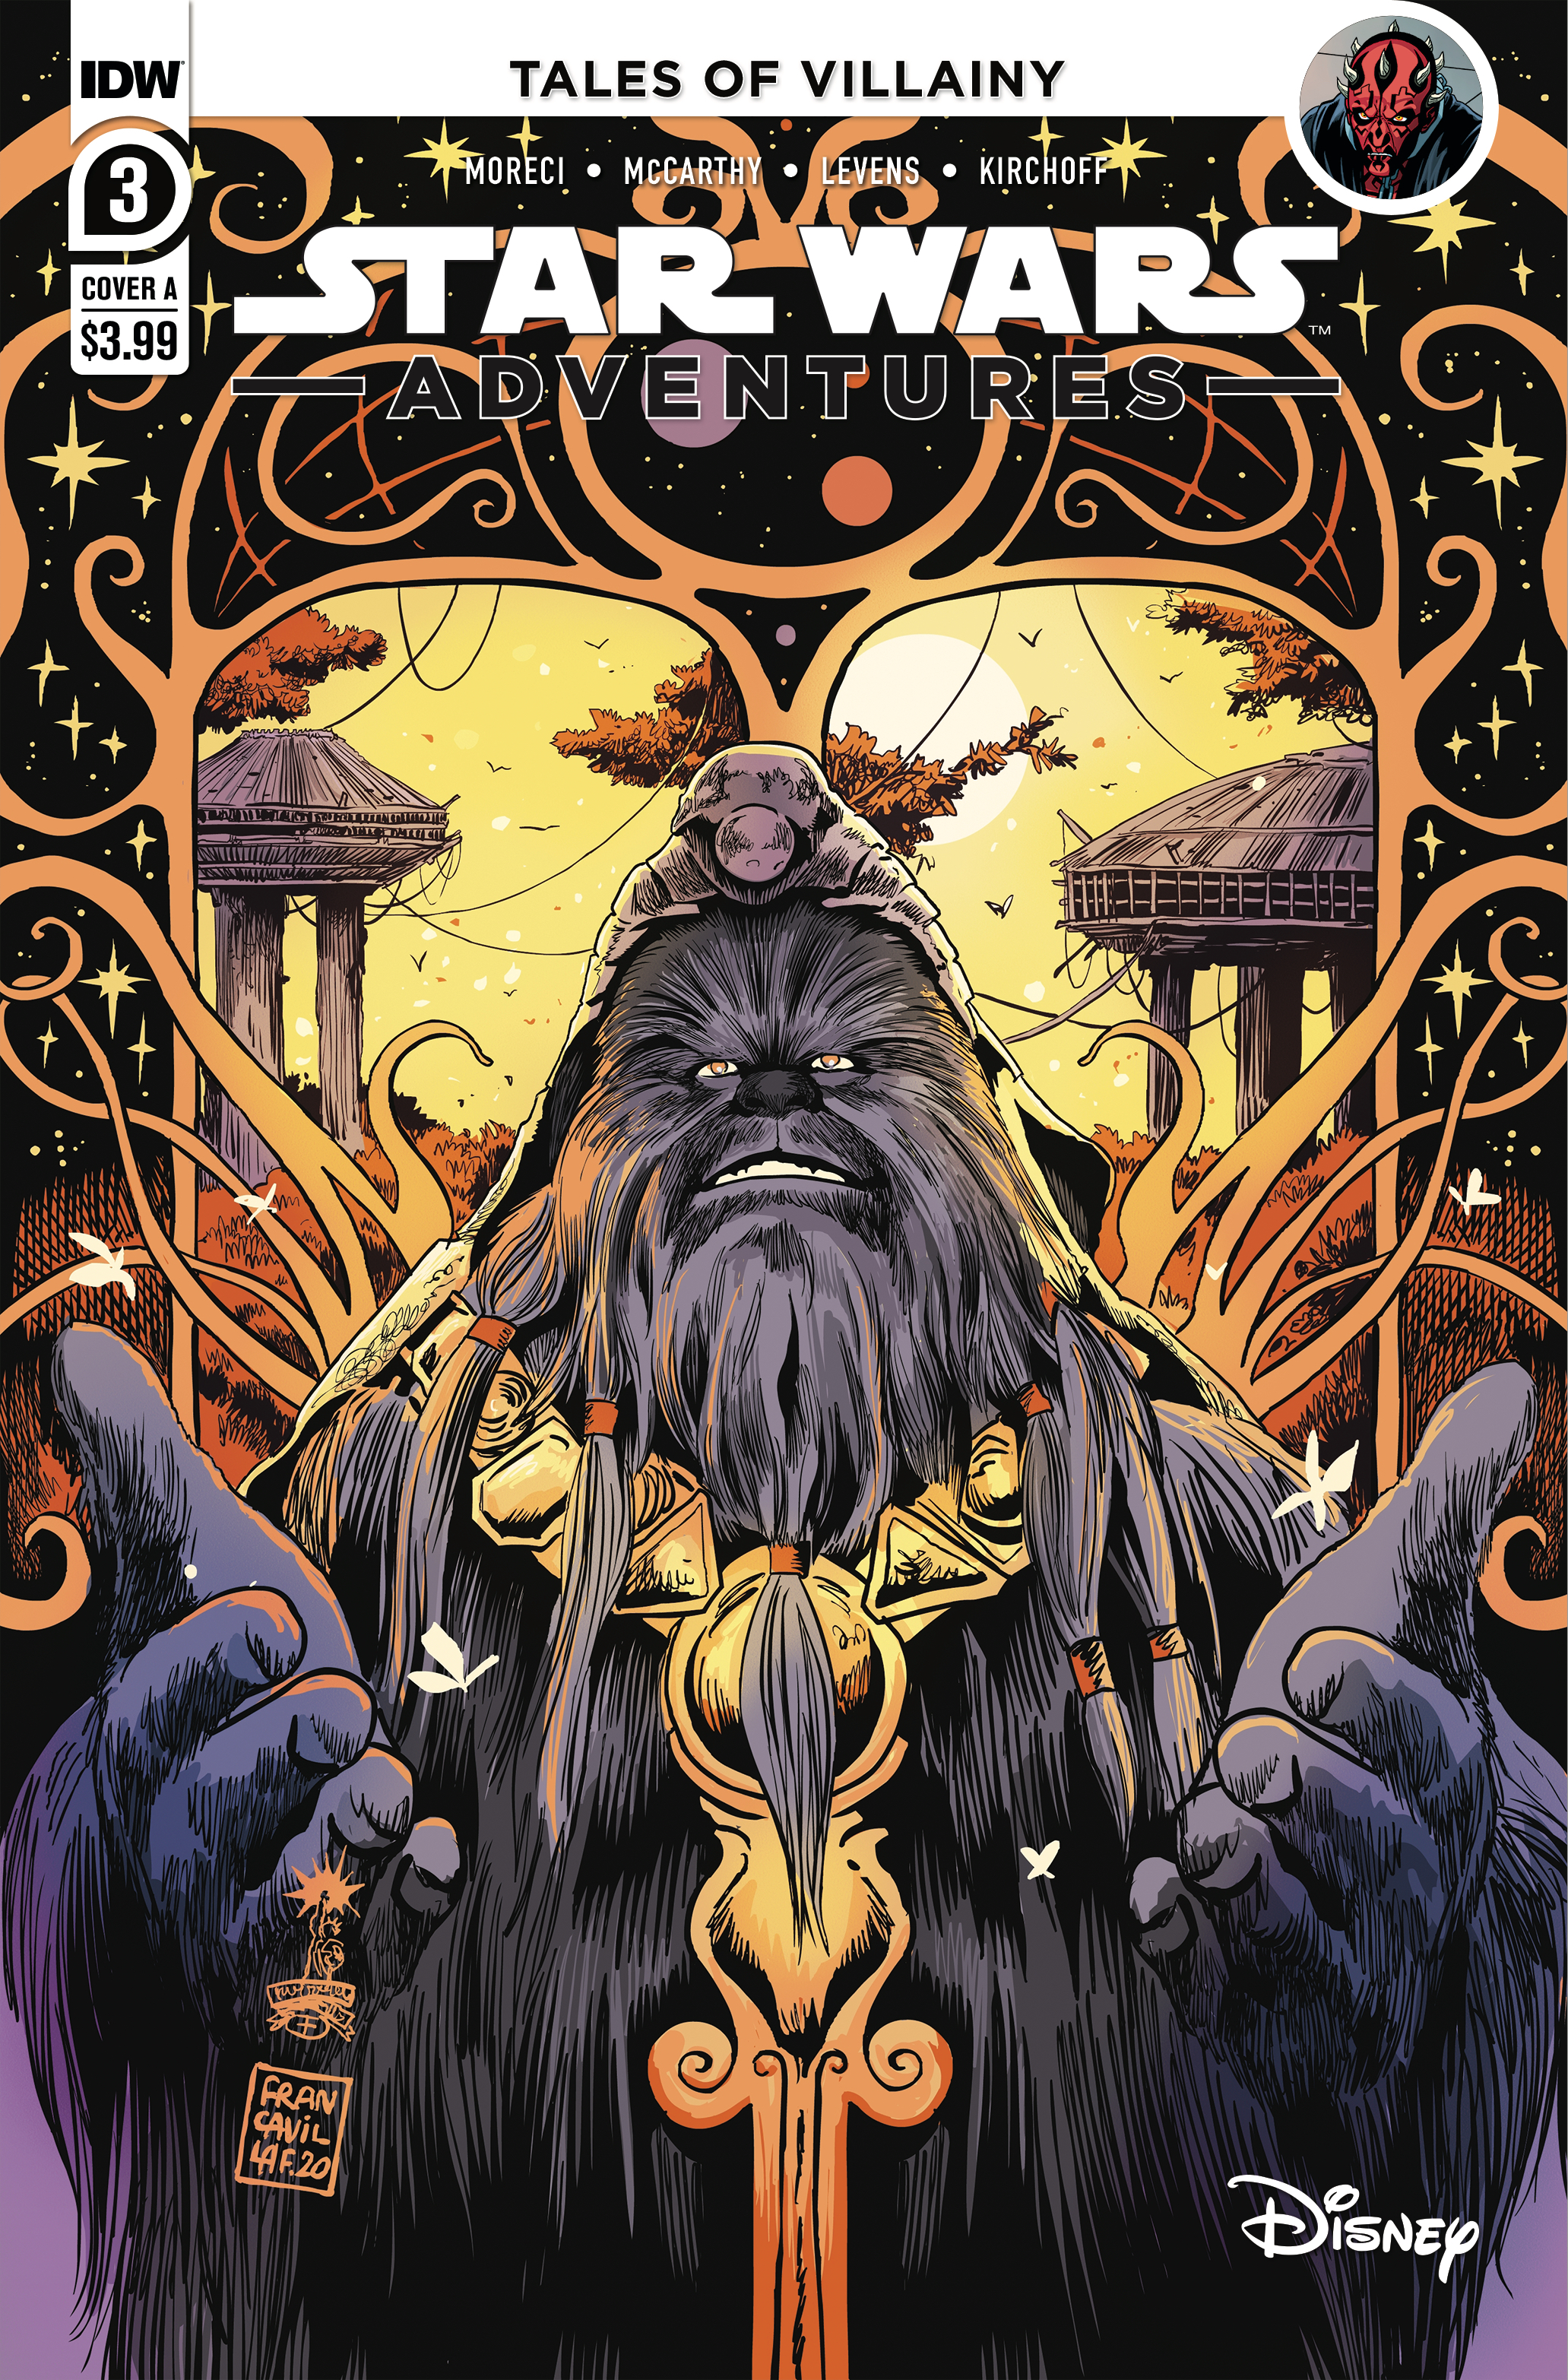 Star Wars Adventures #3 (Cover A by Francesco Francavilla) (25.11.2020)